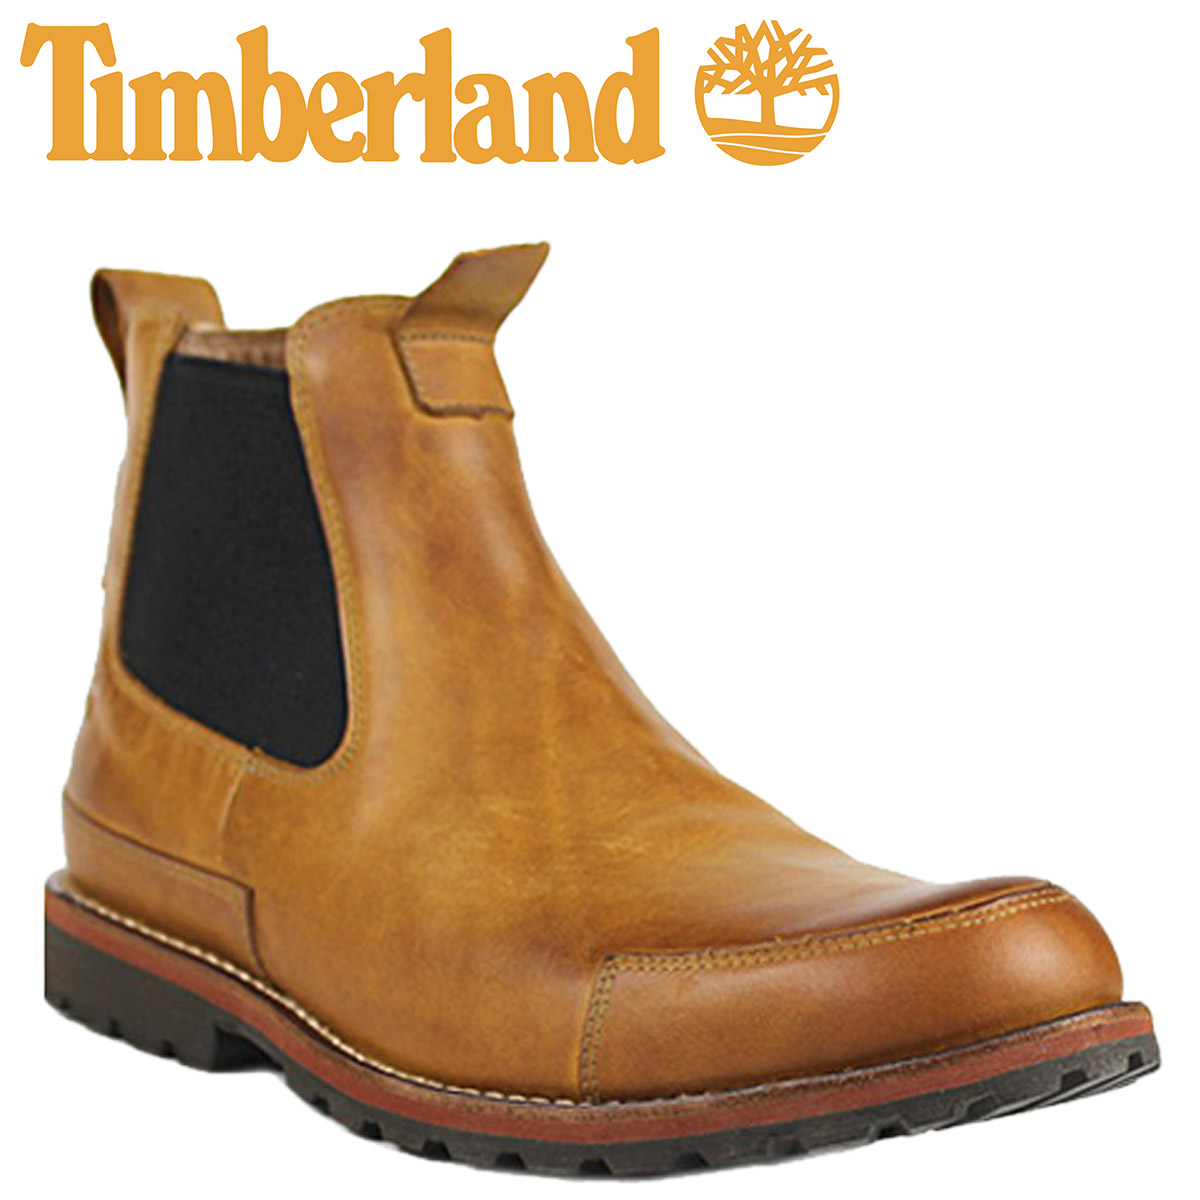 7053d32c9bb ALLSPORTS: Timberland Timberland Earthkeepers Chelsea boots 5509R Earthkeepers  Chelsea Boot oil leather mens WHEAT | Rakuten Global Market